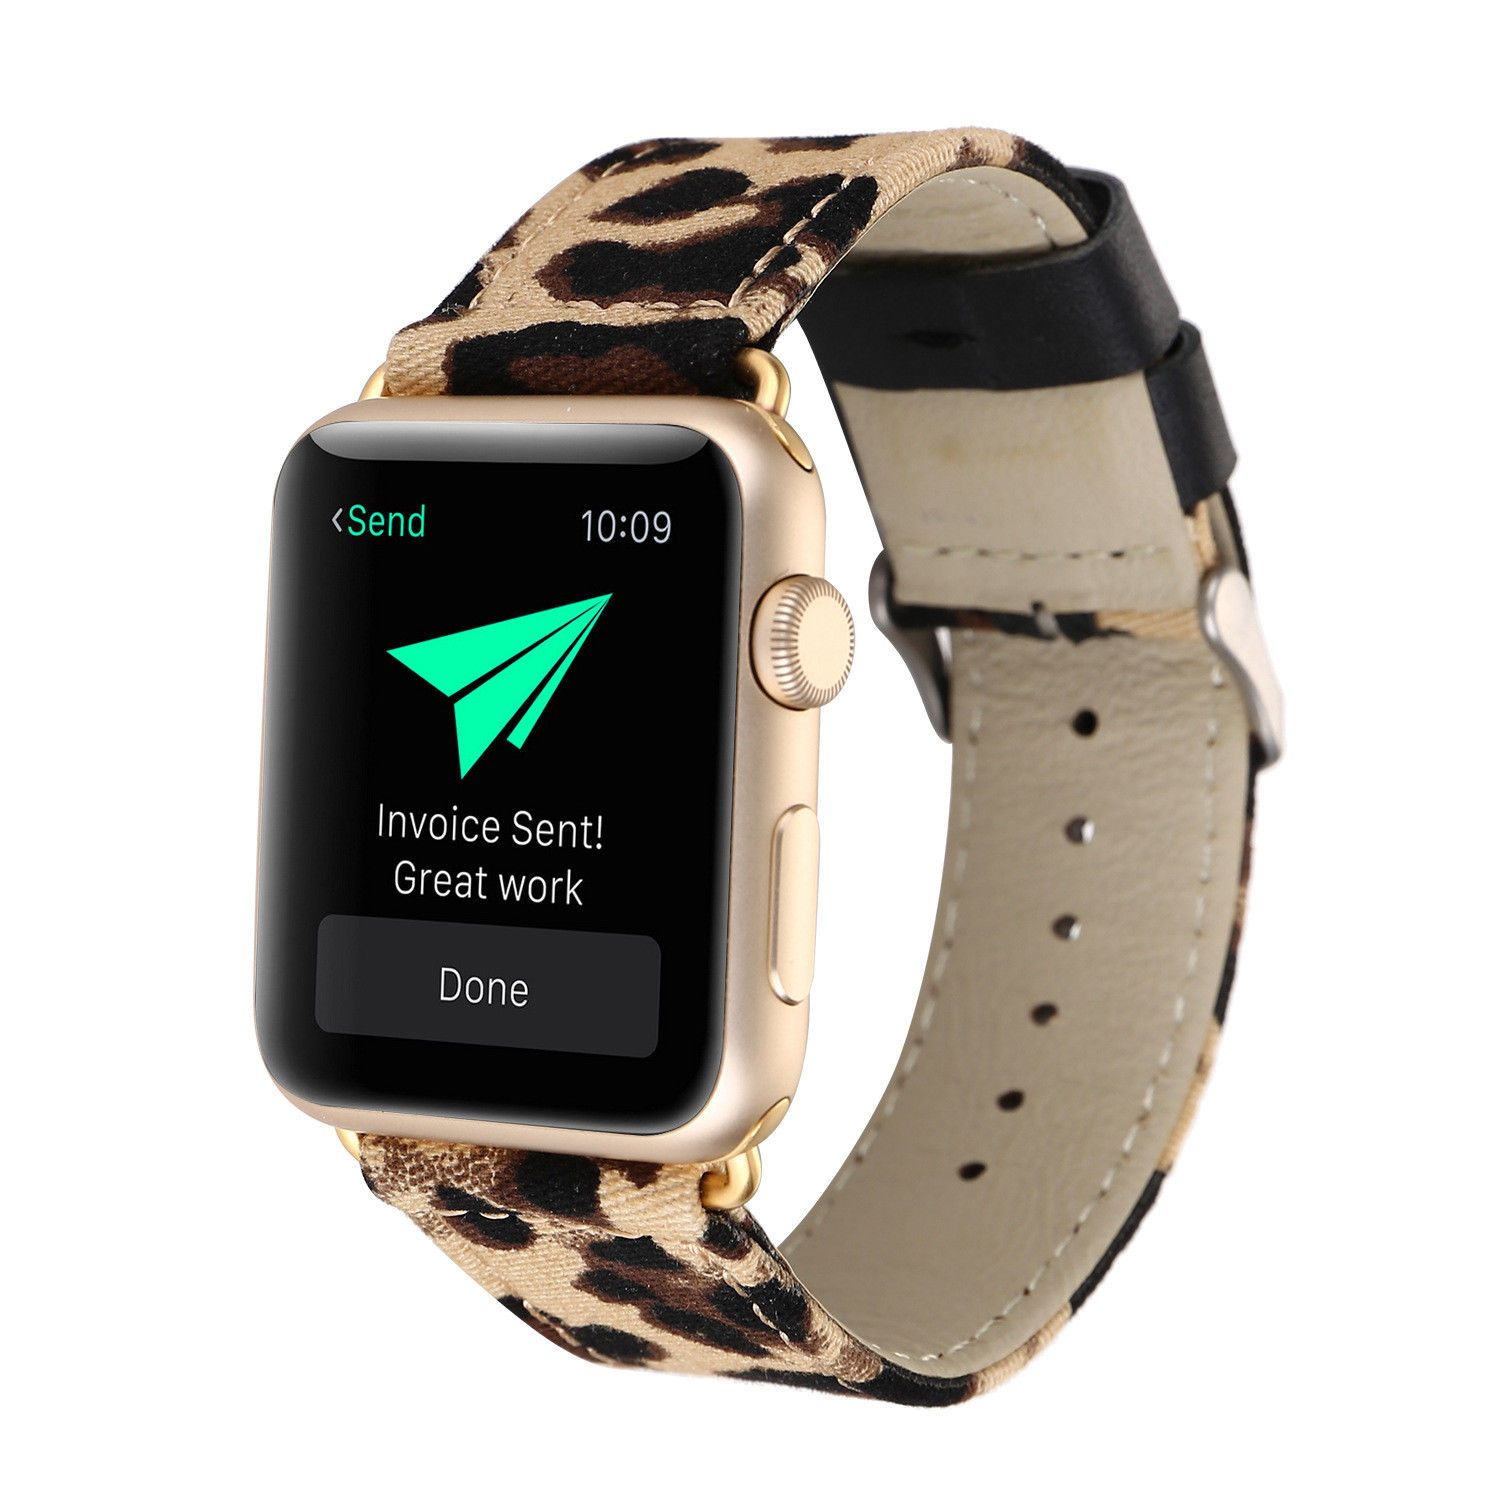 3 99 Leopard Print Genuine Leather Watch Band For Apple Watch Series 3 2 1 38mm 42 38mm Apple Watch Band Apple Watch Bands Apple Watch Accessories